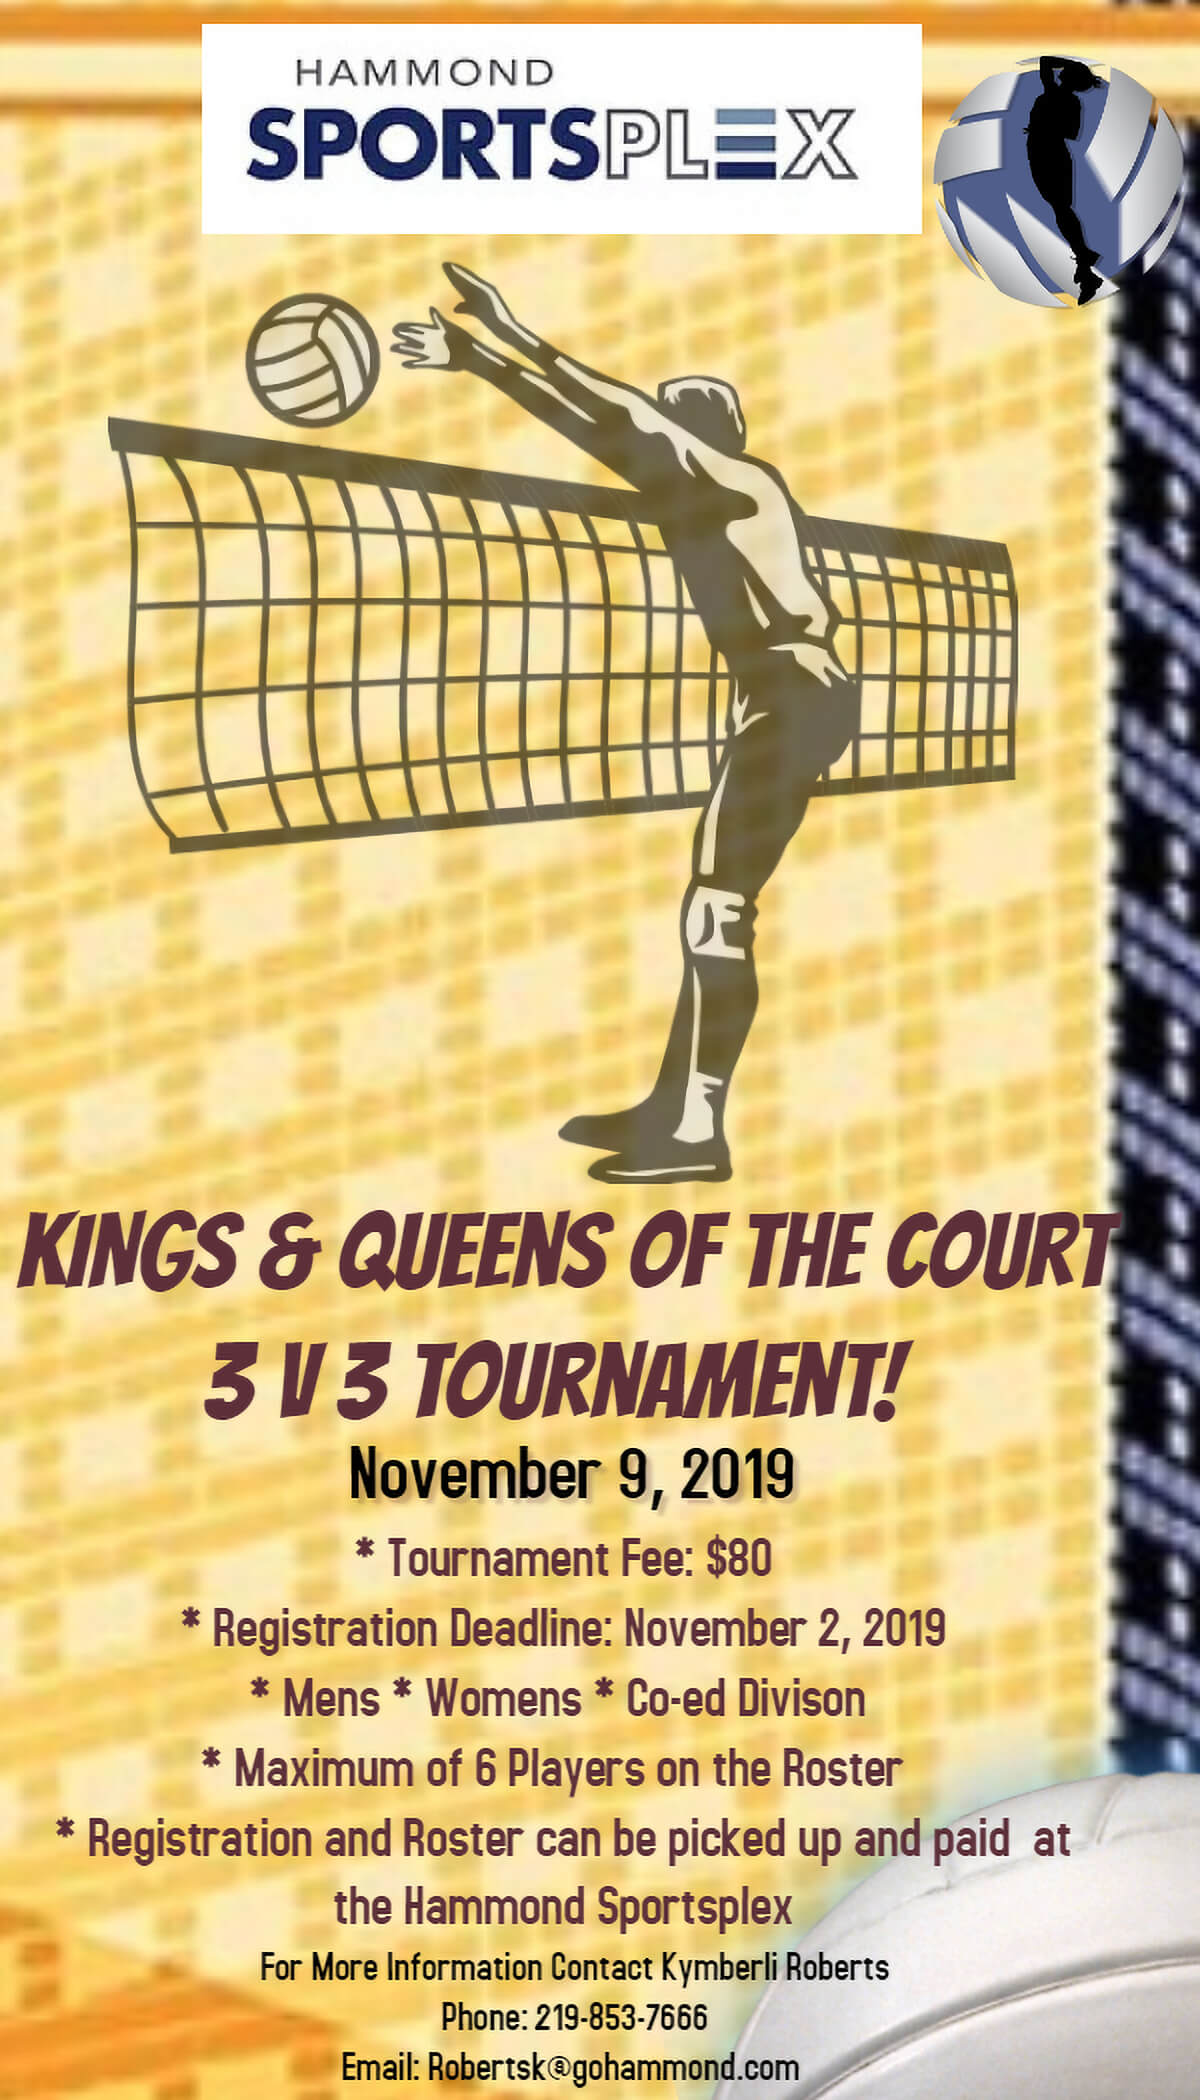 Hammond Sportsplex to Host 3 V 3 Volleyball Tourney